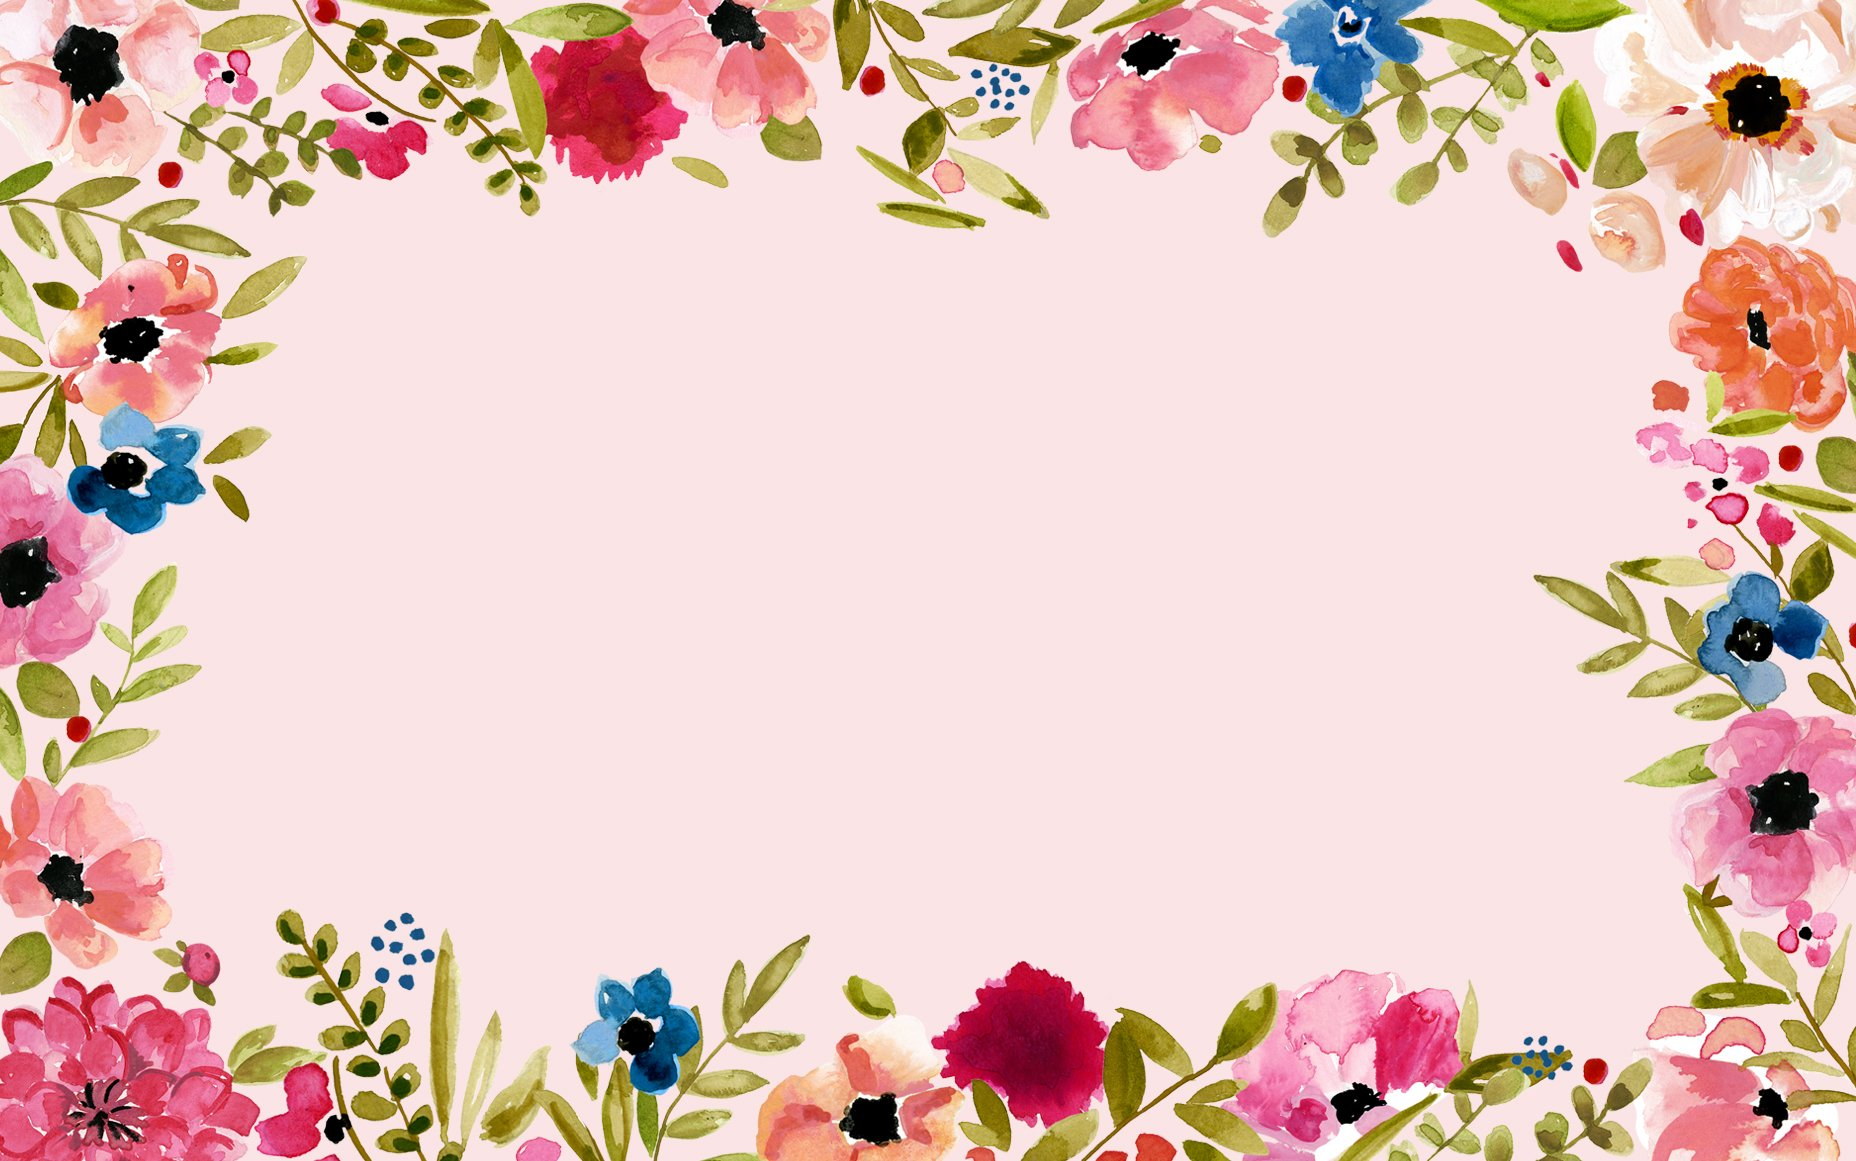 Floral Border Wallpaper And Background Image 1856x1161 Id